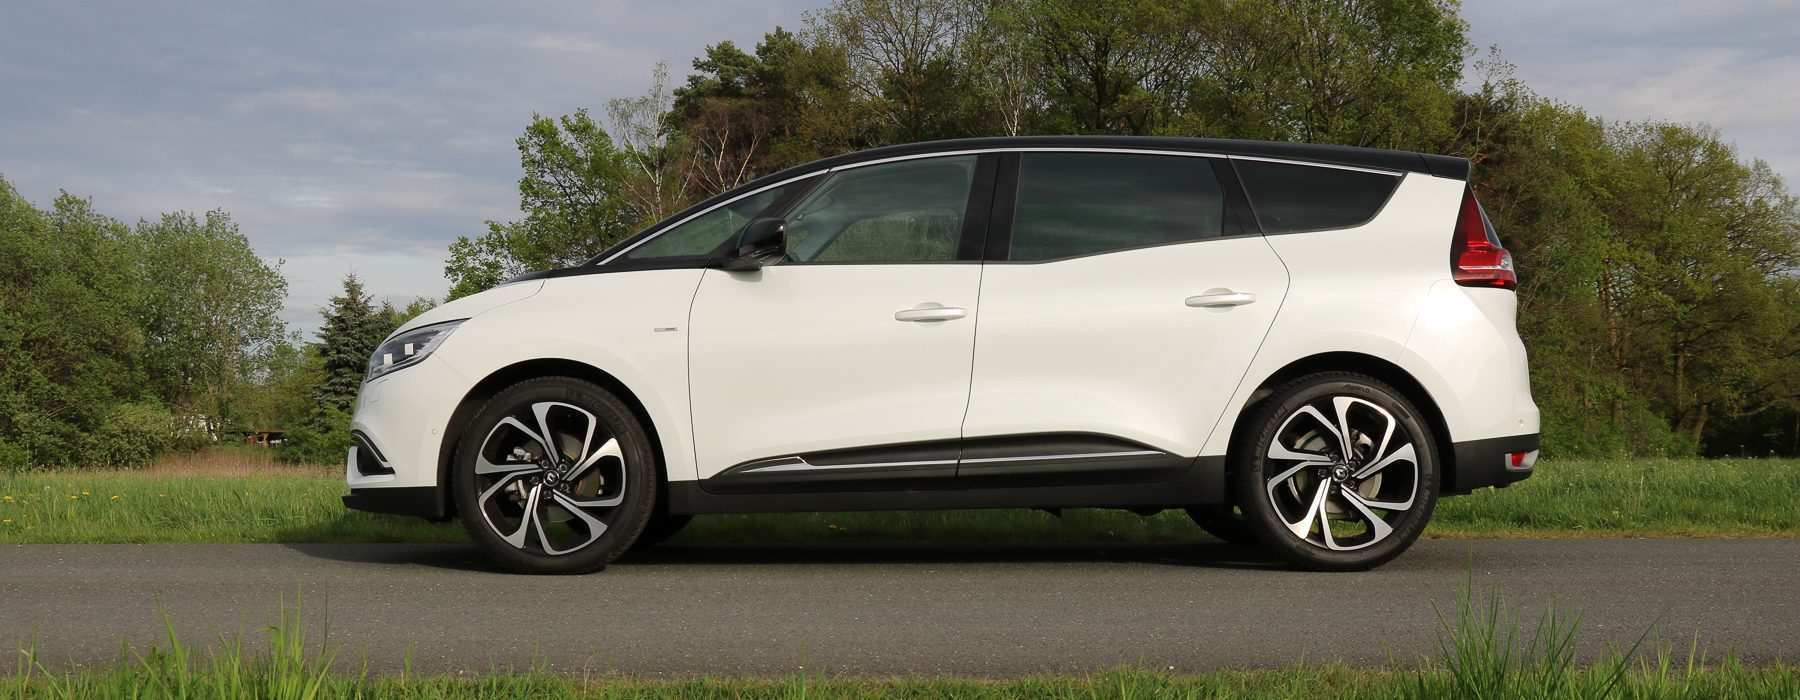 98 The Best Renault Scenic 2019 Pictures